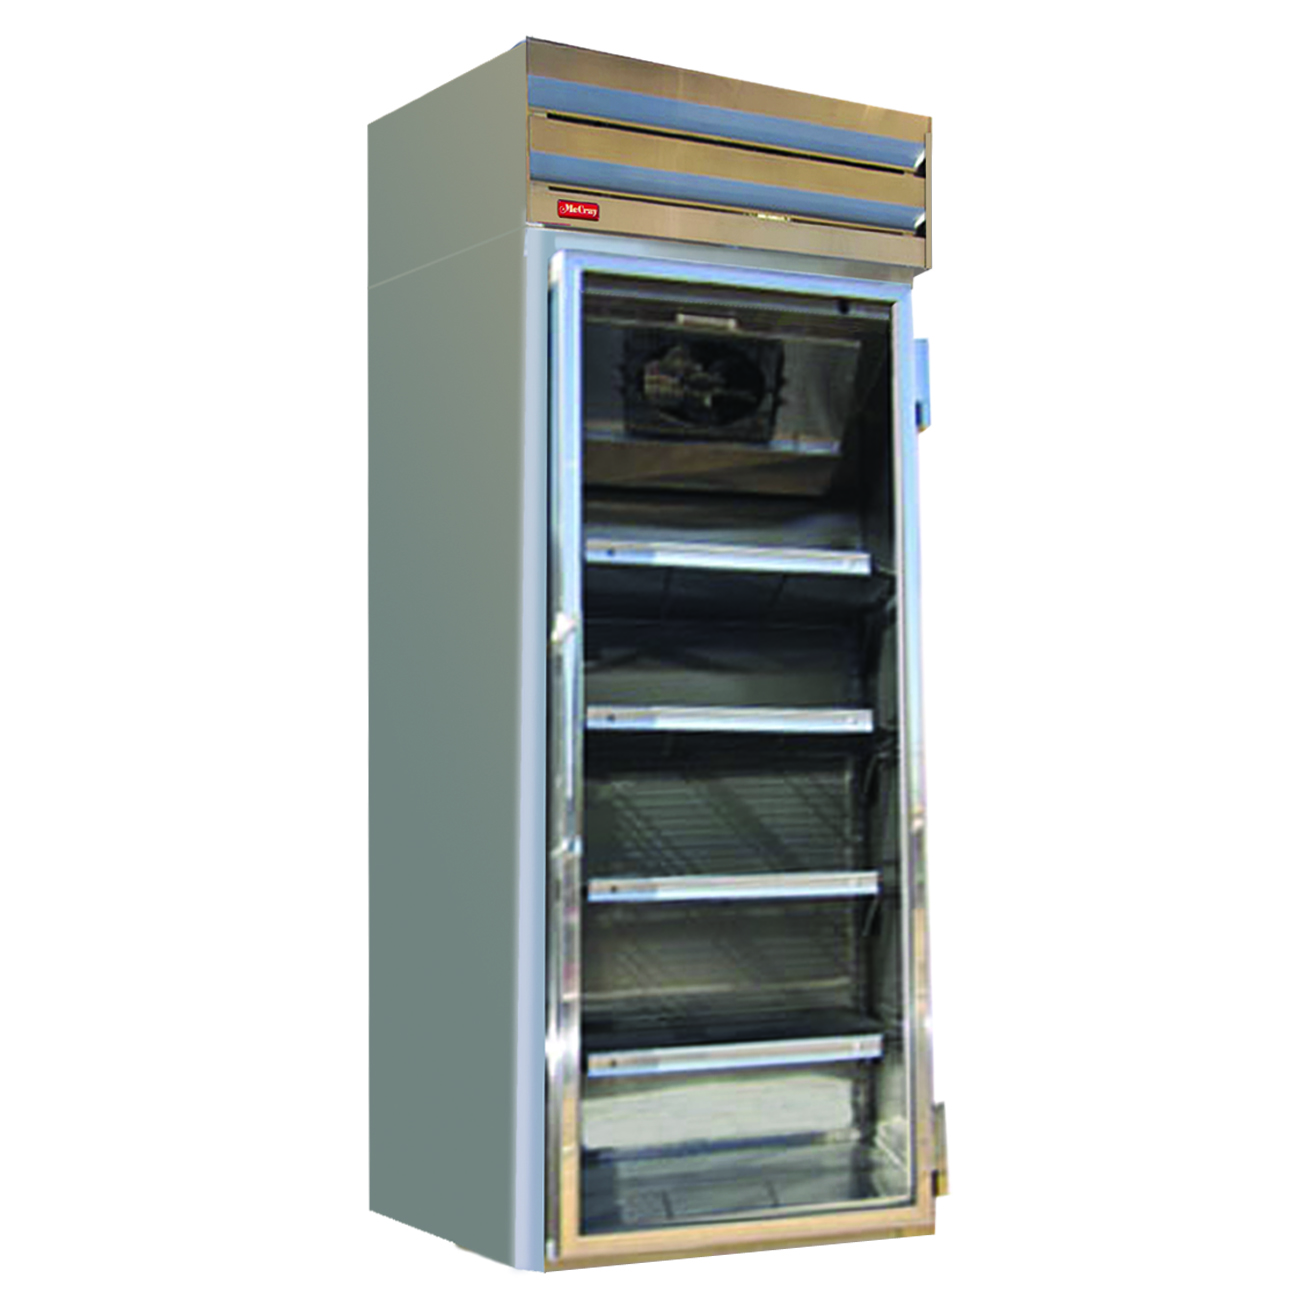 Howard-McCray GF22-LT-B freezer, merchandiser